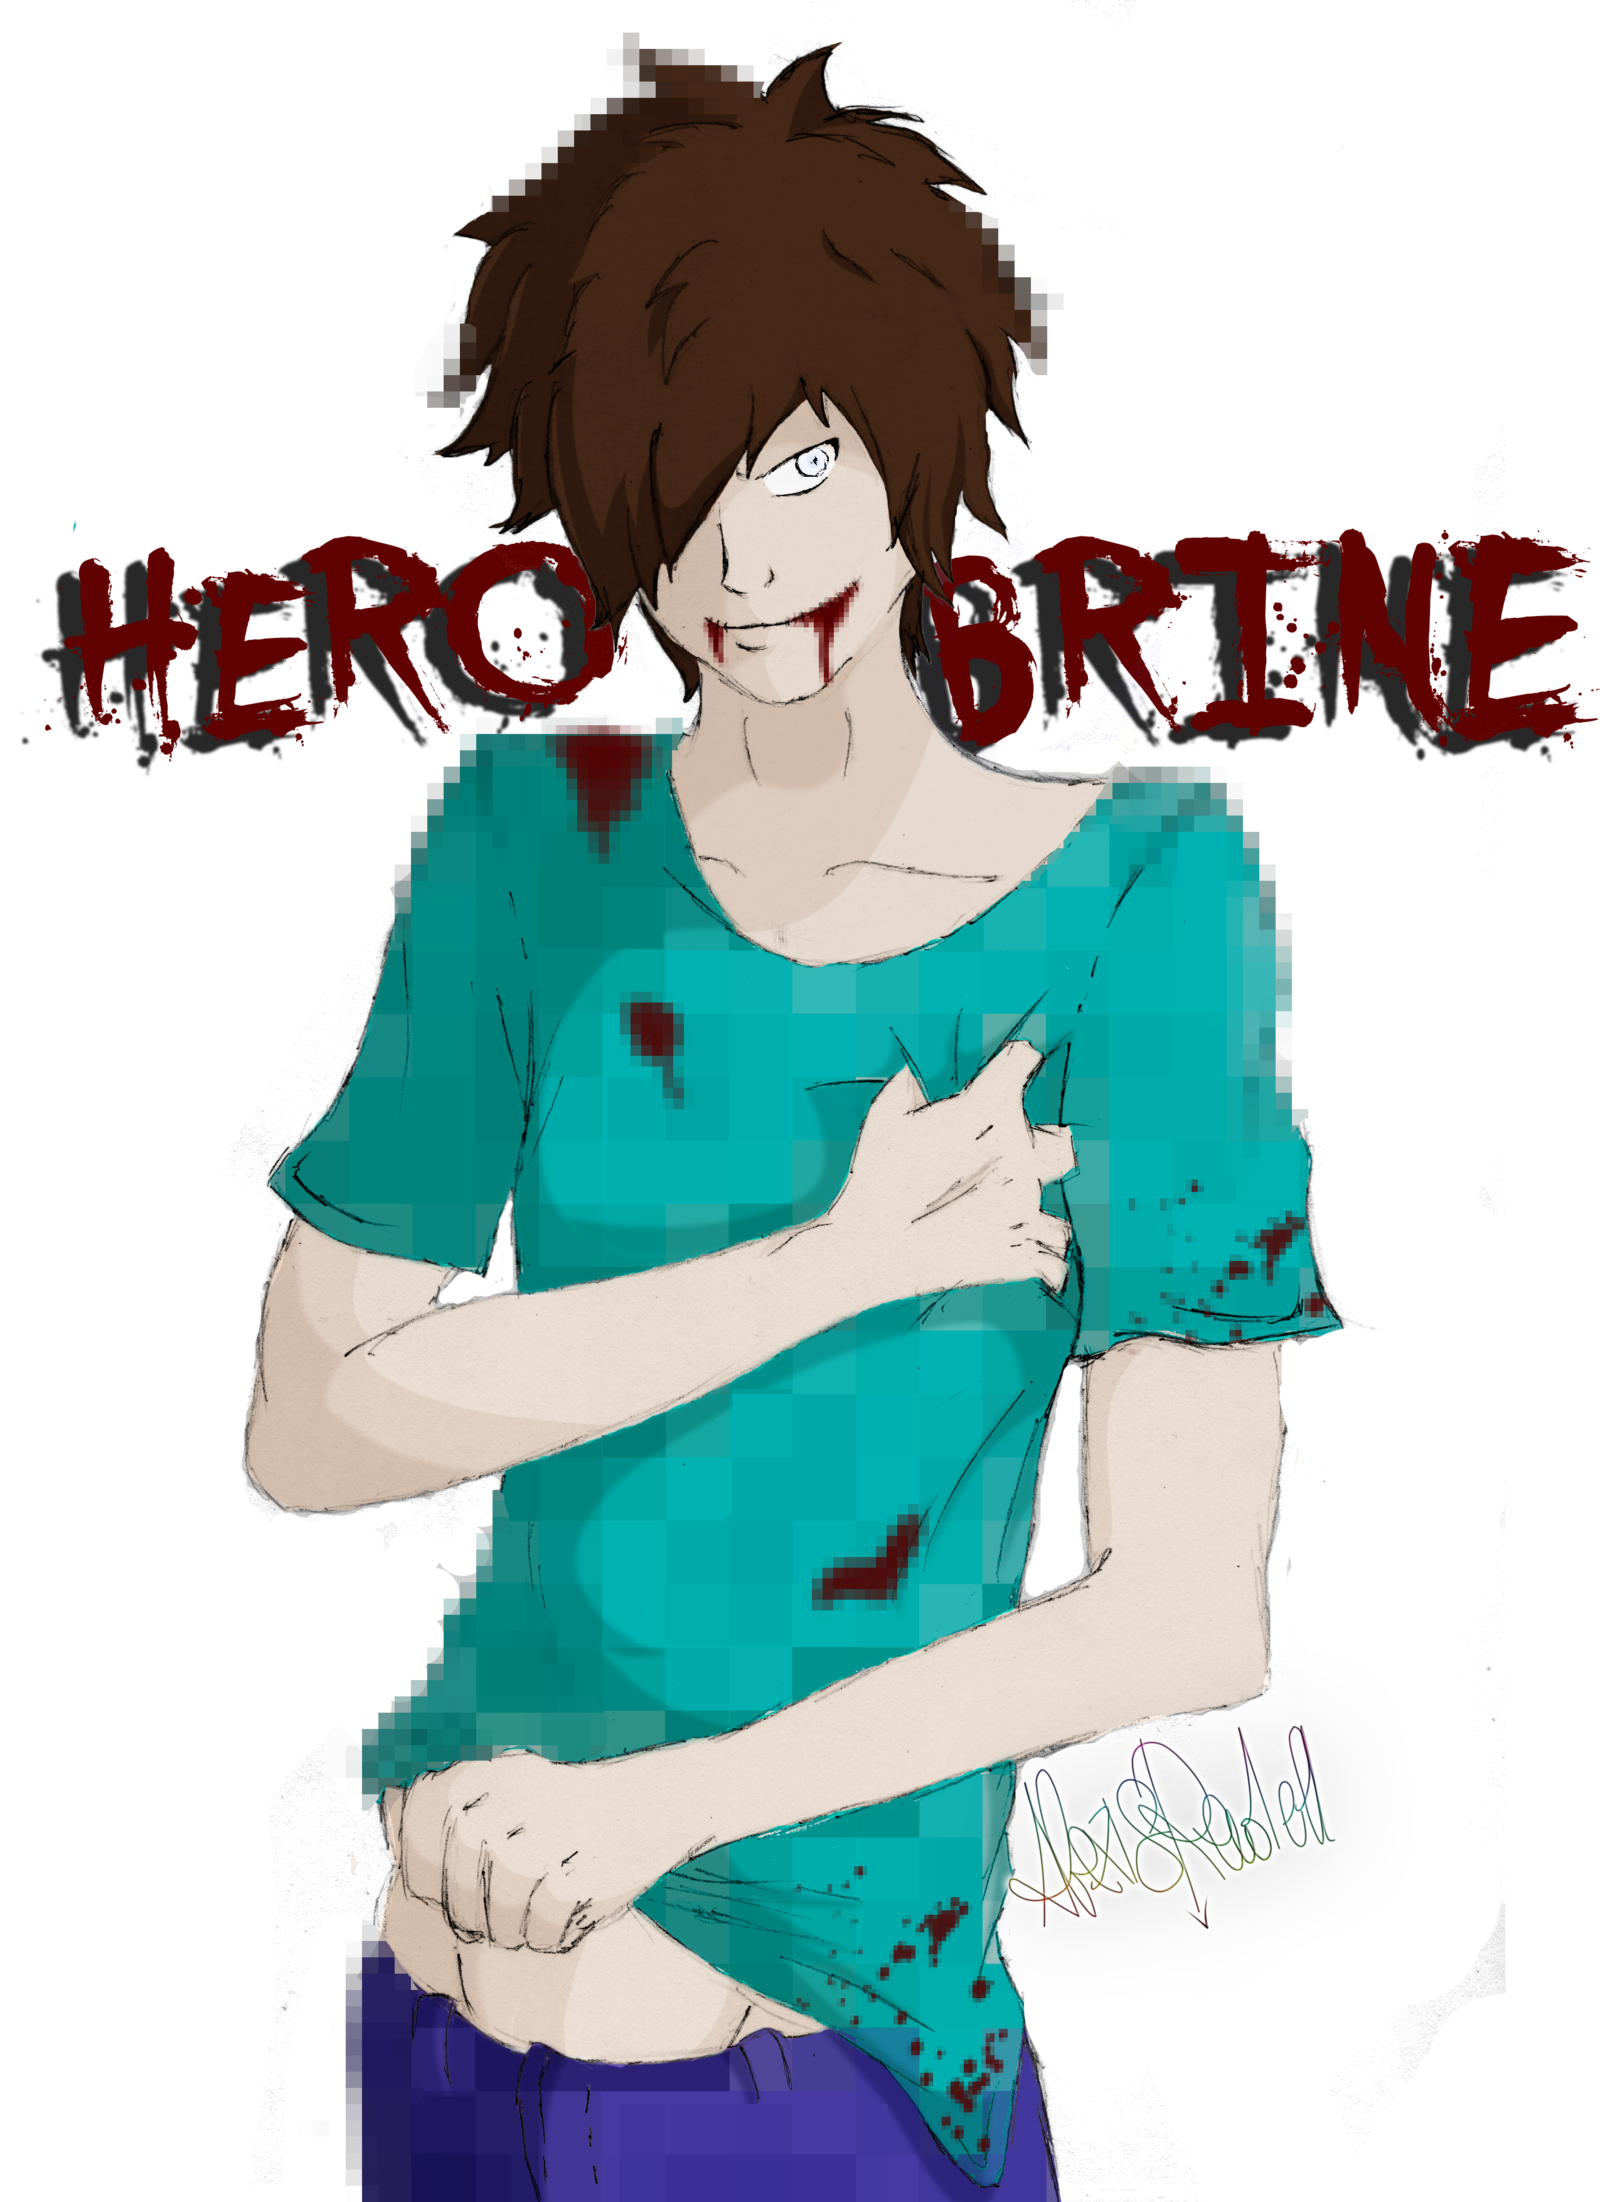 Herobrine from Minecraft he looks really good in anime